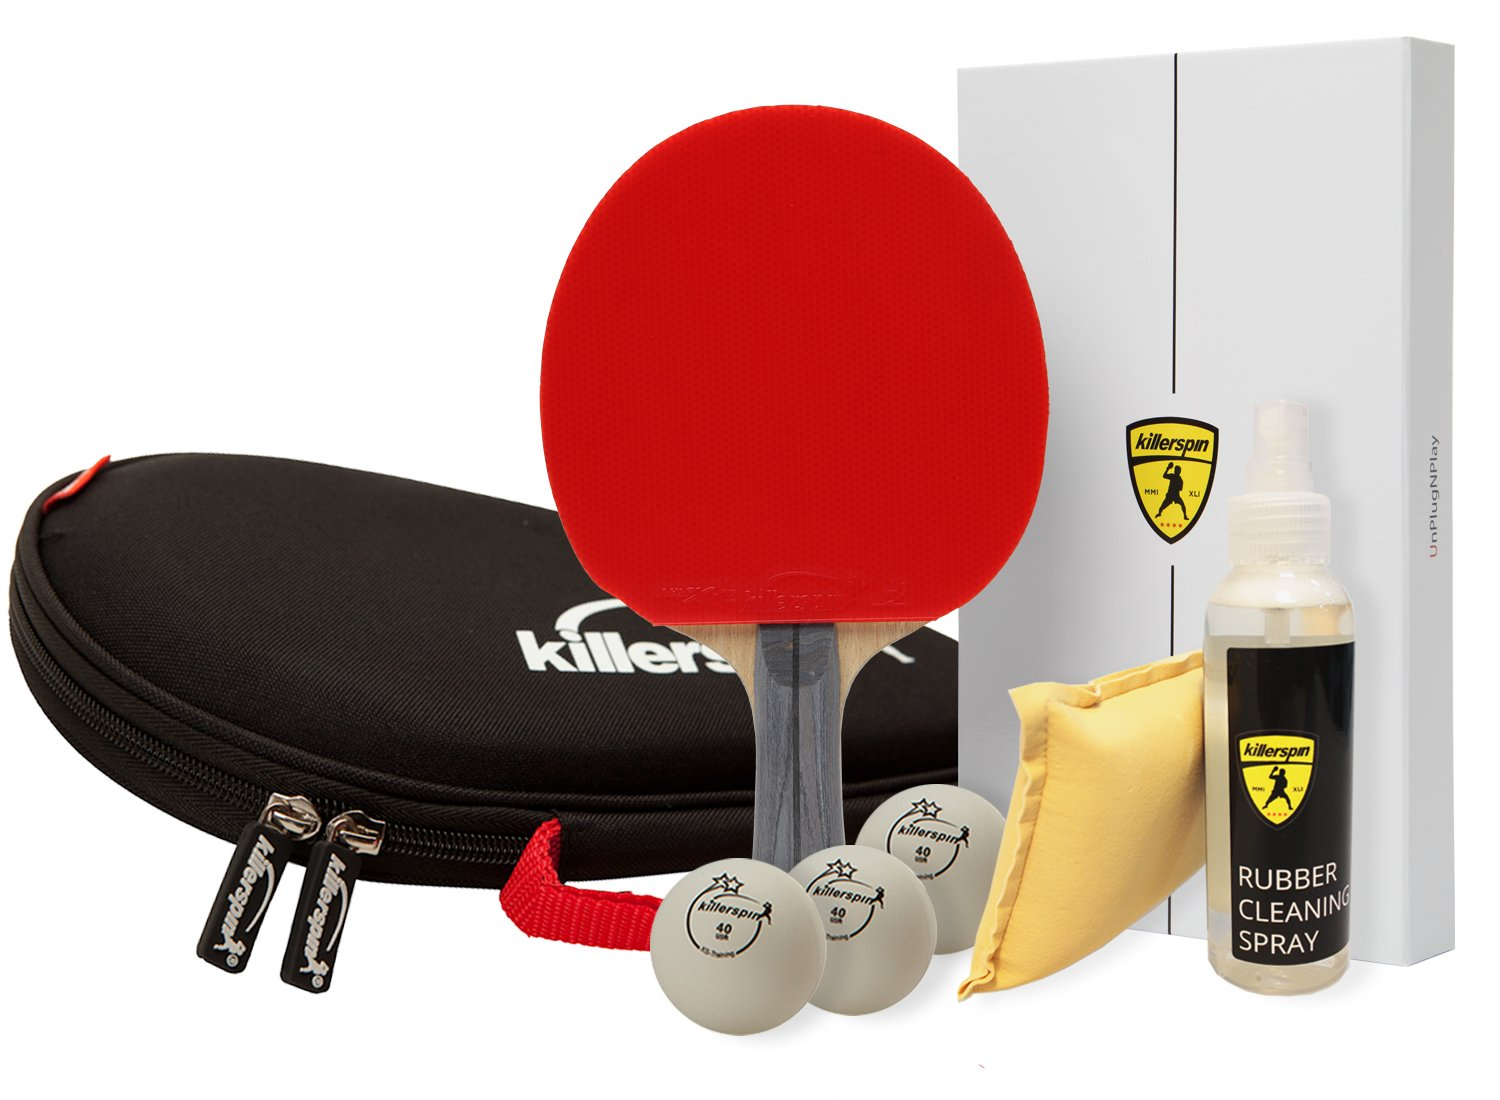 Killerspin Table Tennis All in One Bundle: Ping Pong Paddle, Bag, Balls & Rubber Cleaning Spray